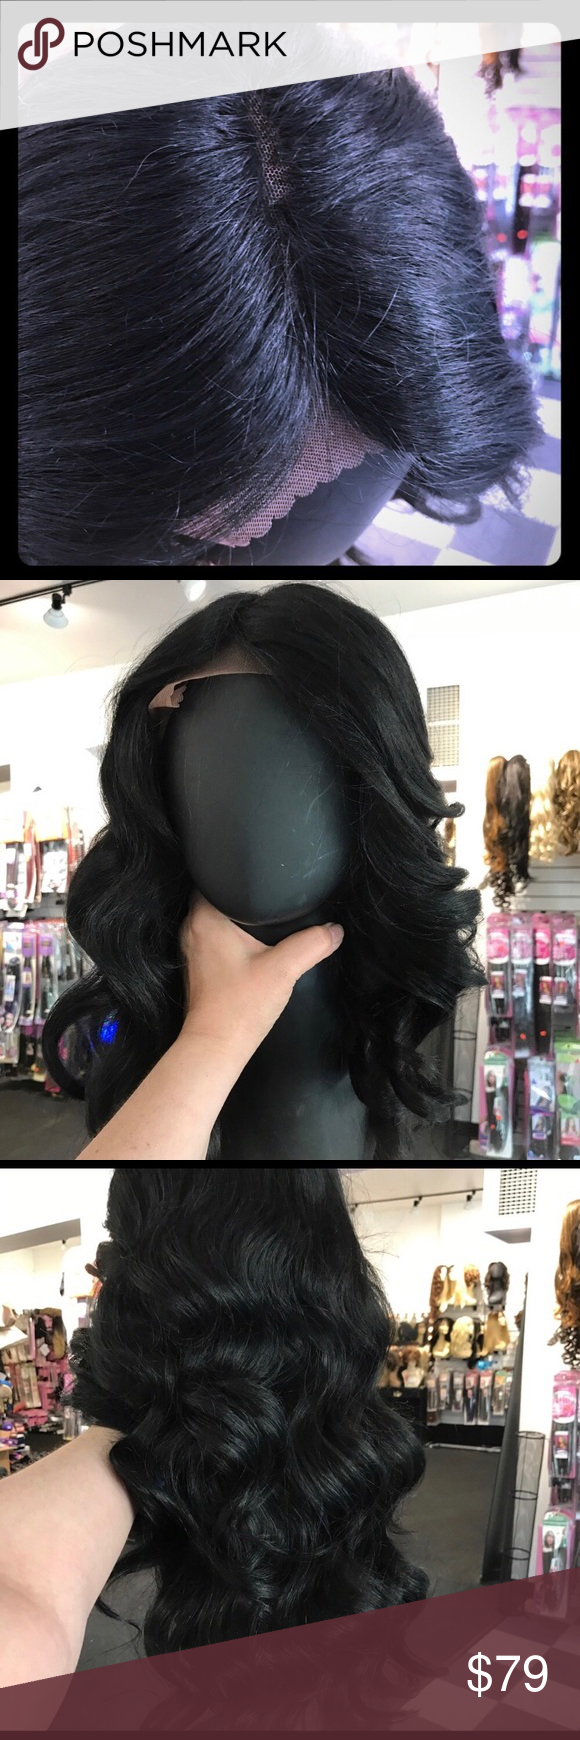 Long Deep Wave Raven Black Wig Swisslace All Color  Styling tools